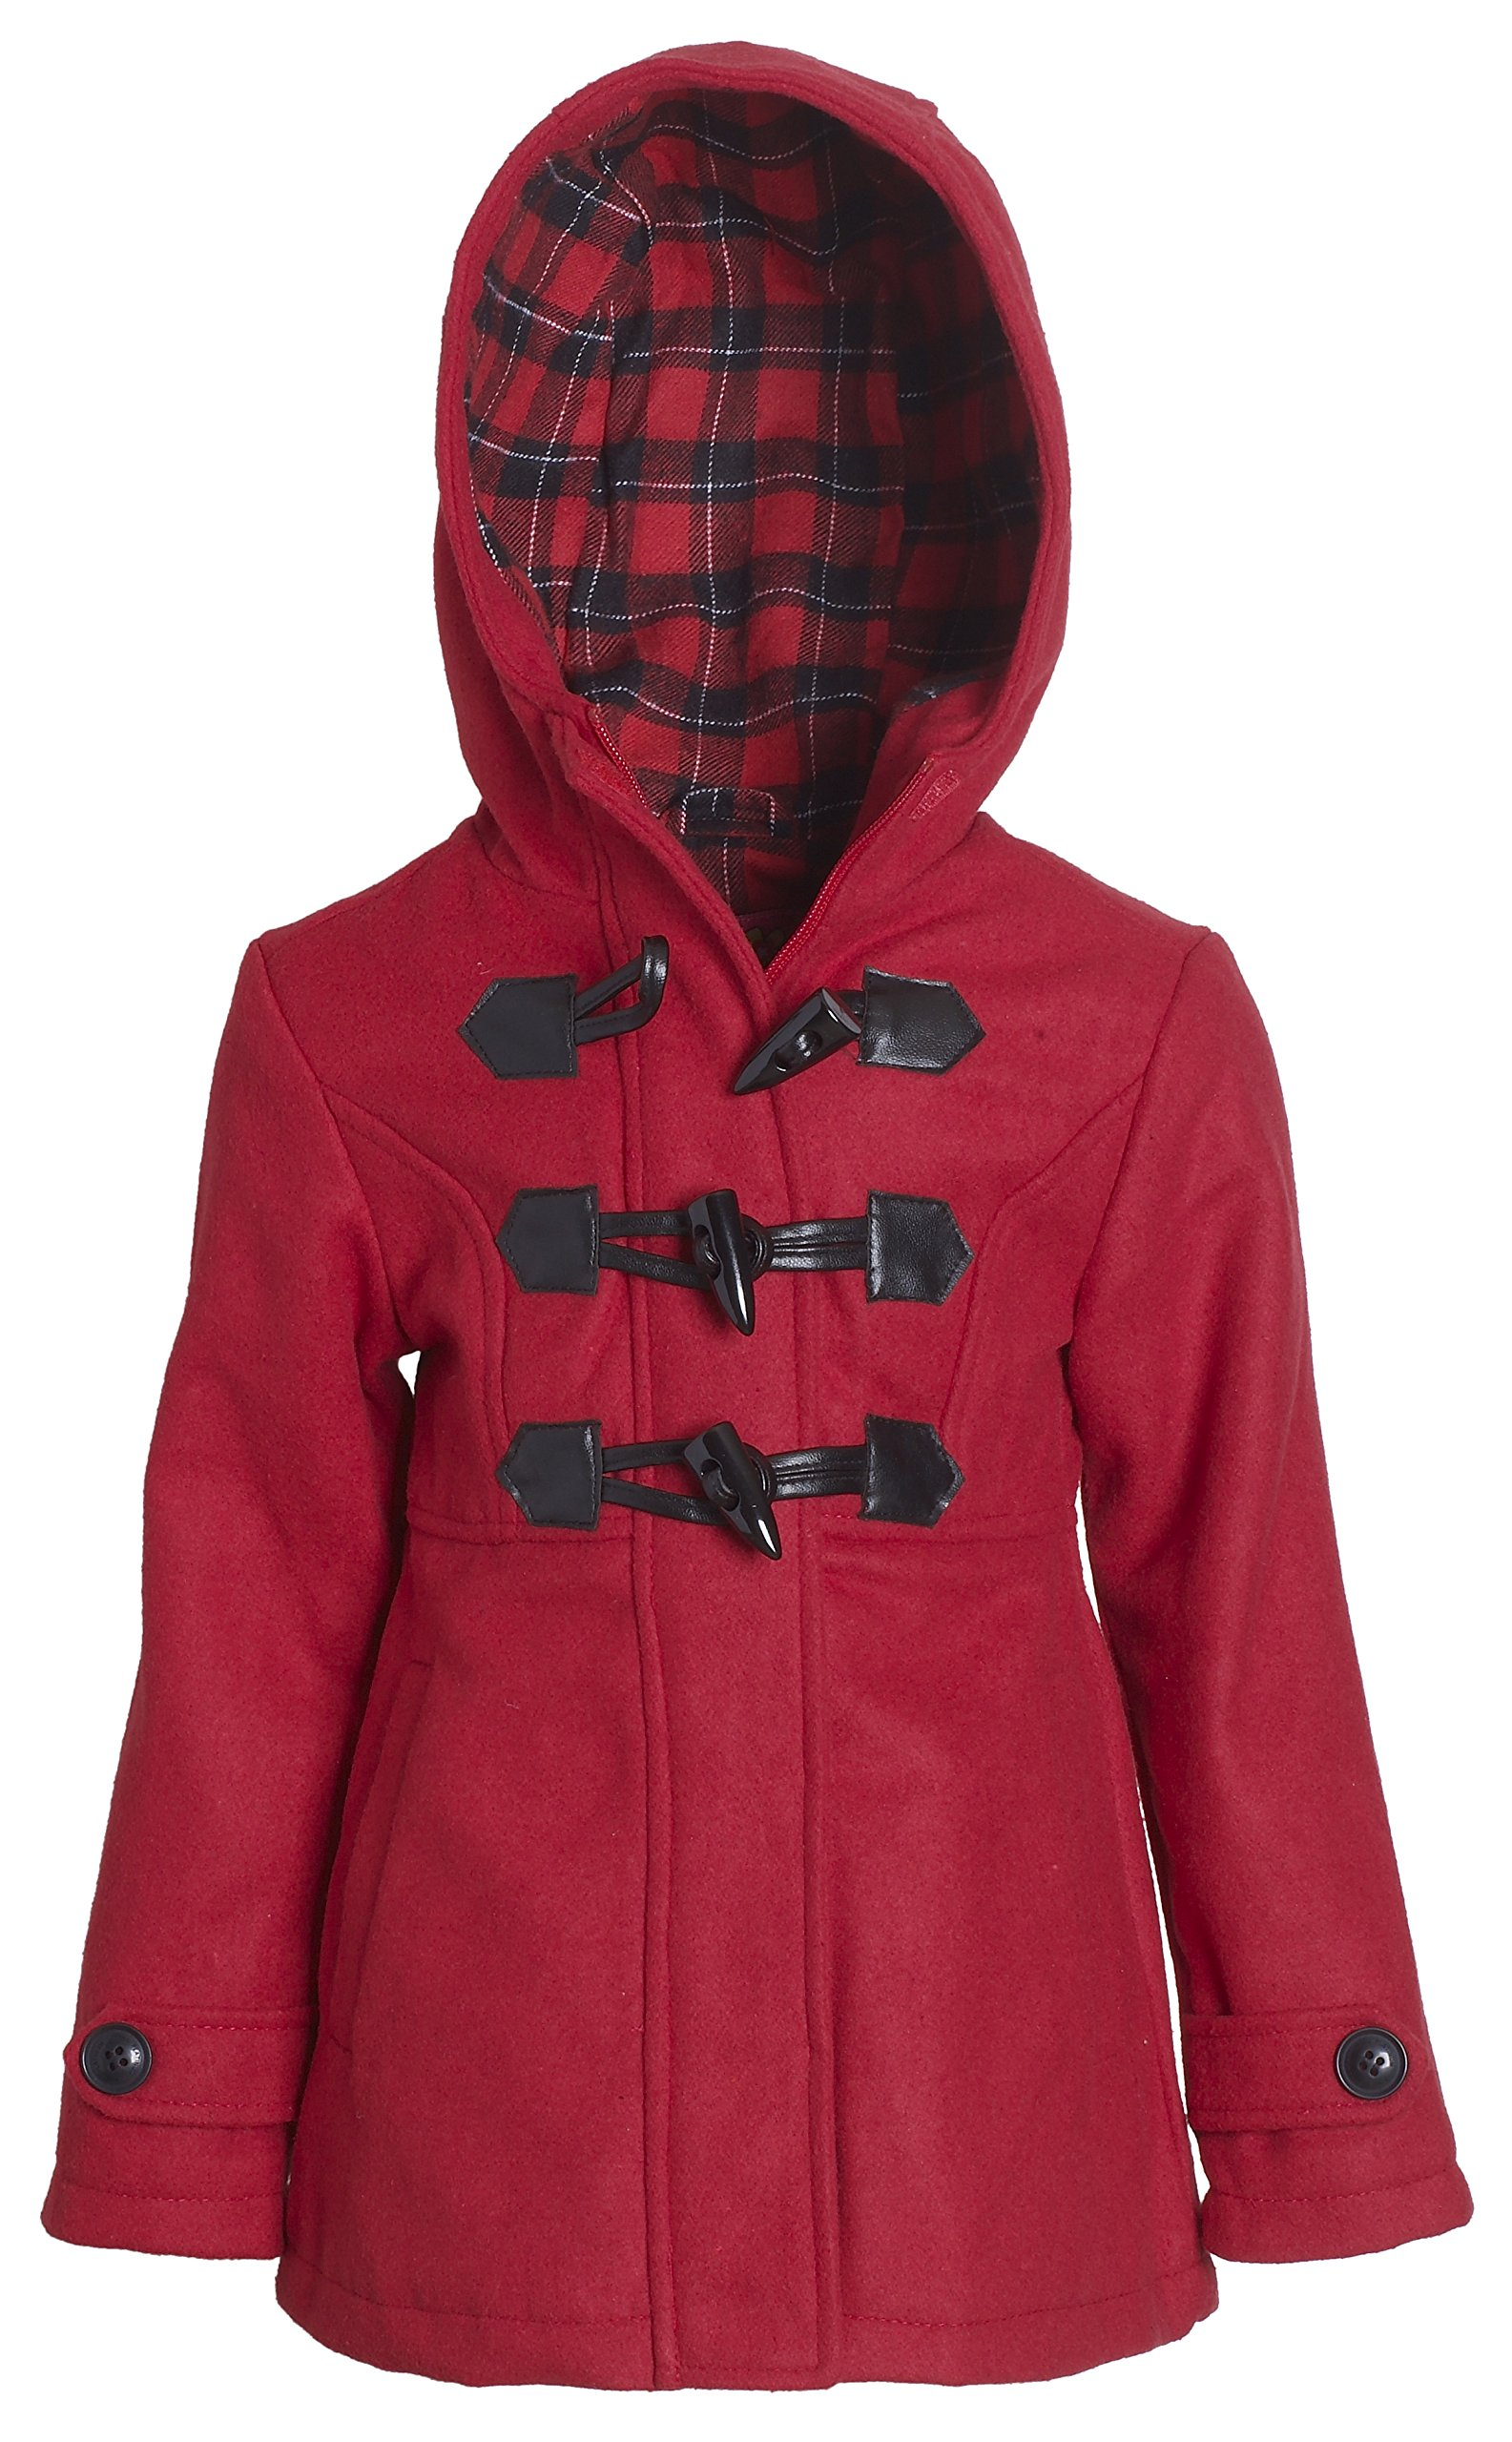 Pink Platinum Girl Wool Blend Plaid Lined Hooded Winter Toggle Dress Coat Jacket - Red (Size 6X)